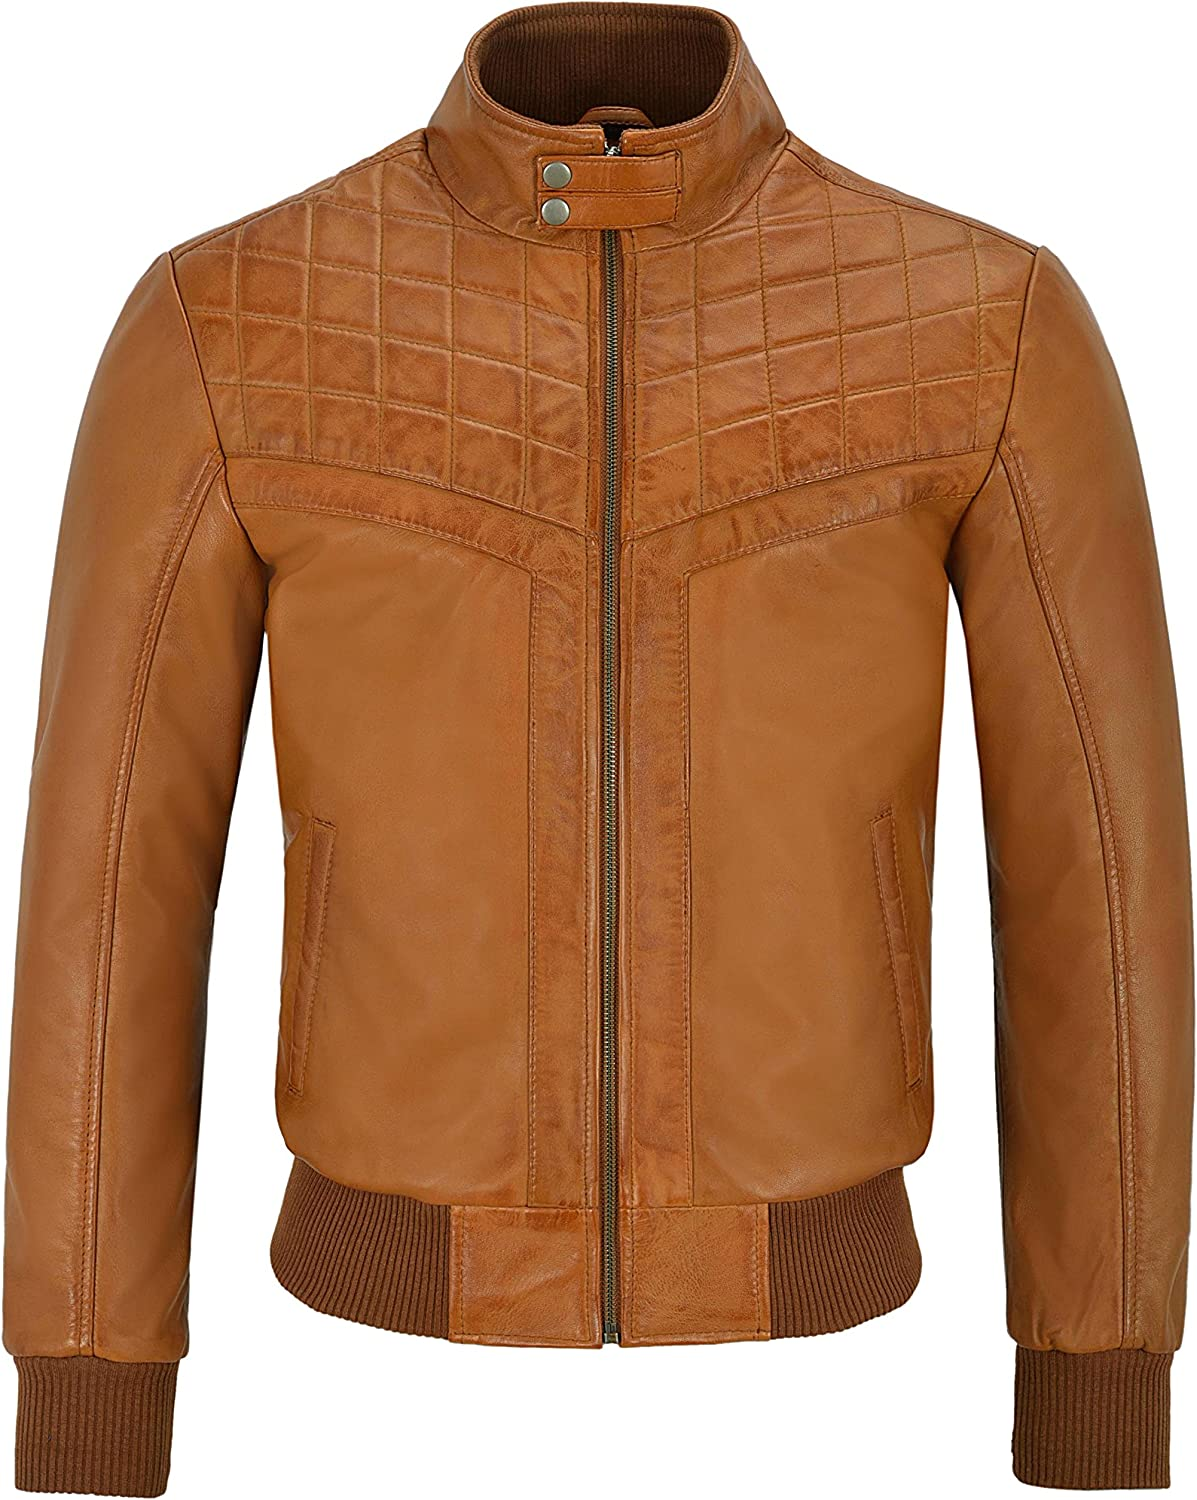 Smart Range Mens 70s Leather Jacket Tan Quilted Retro Bomber Style Lambskin Leather 4757